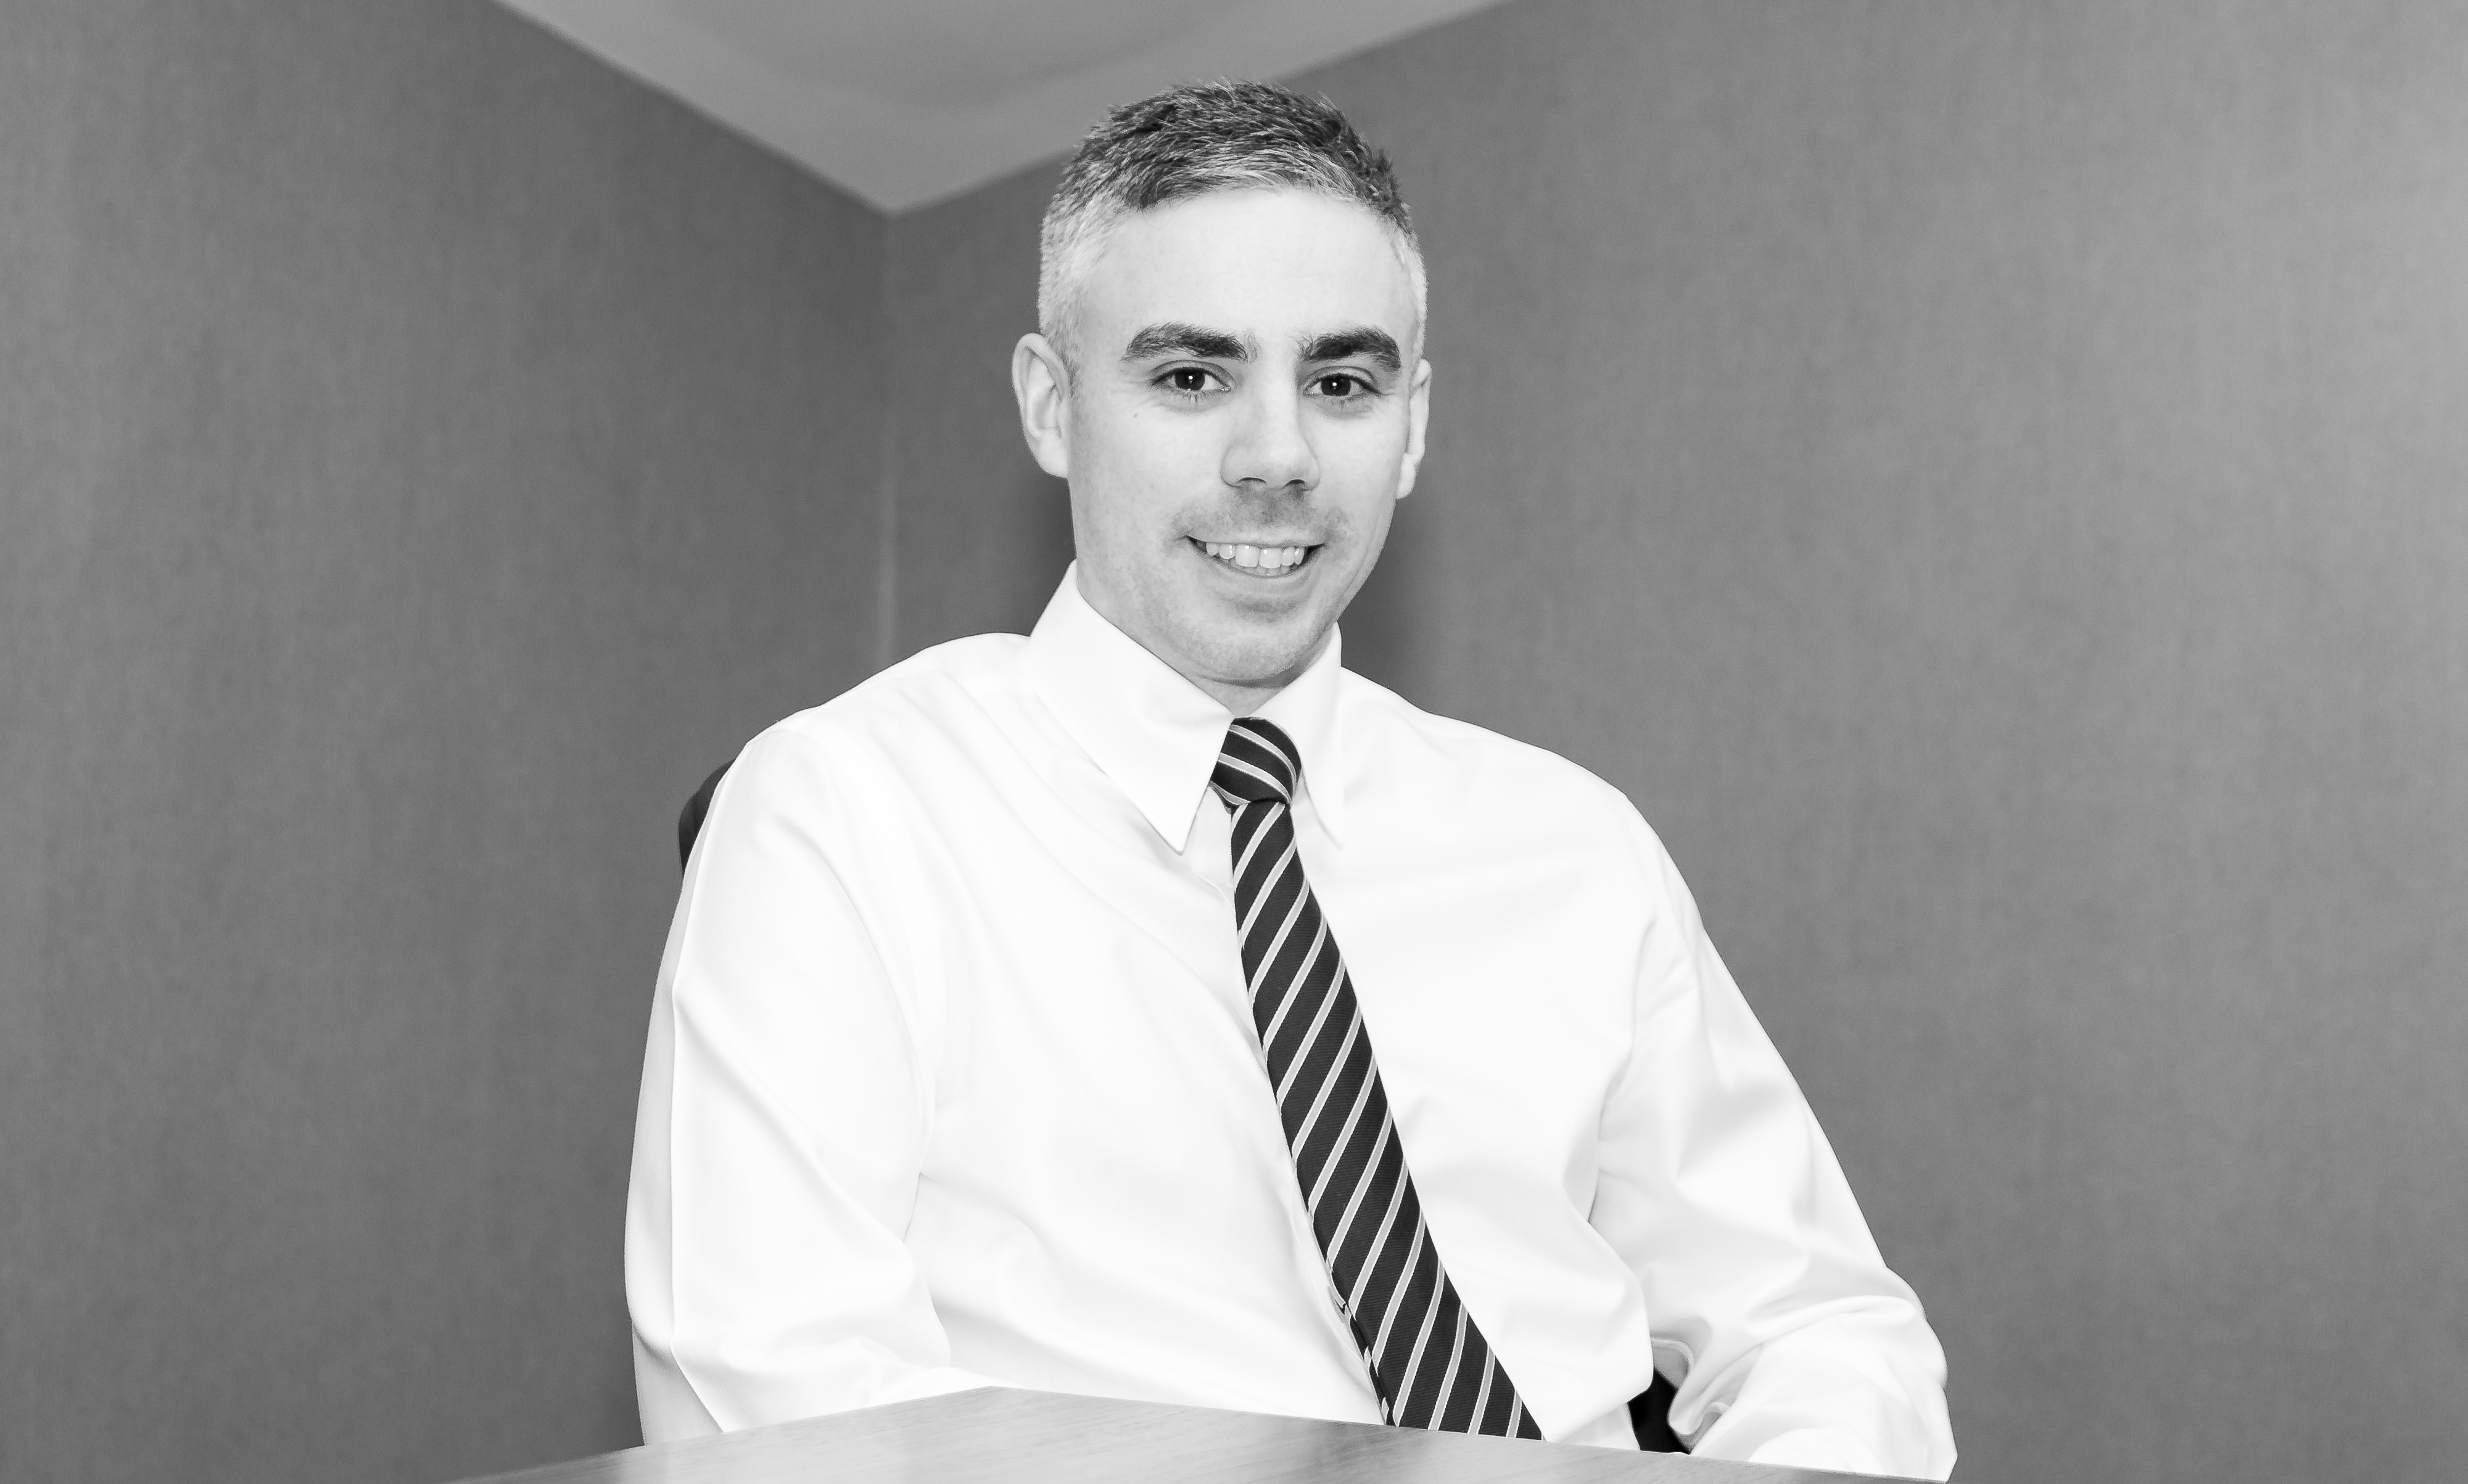 Peter Cross, General Manager, Davanti Tyres